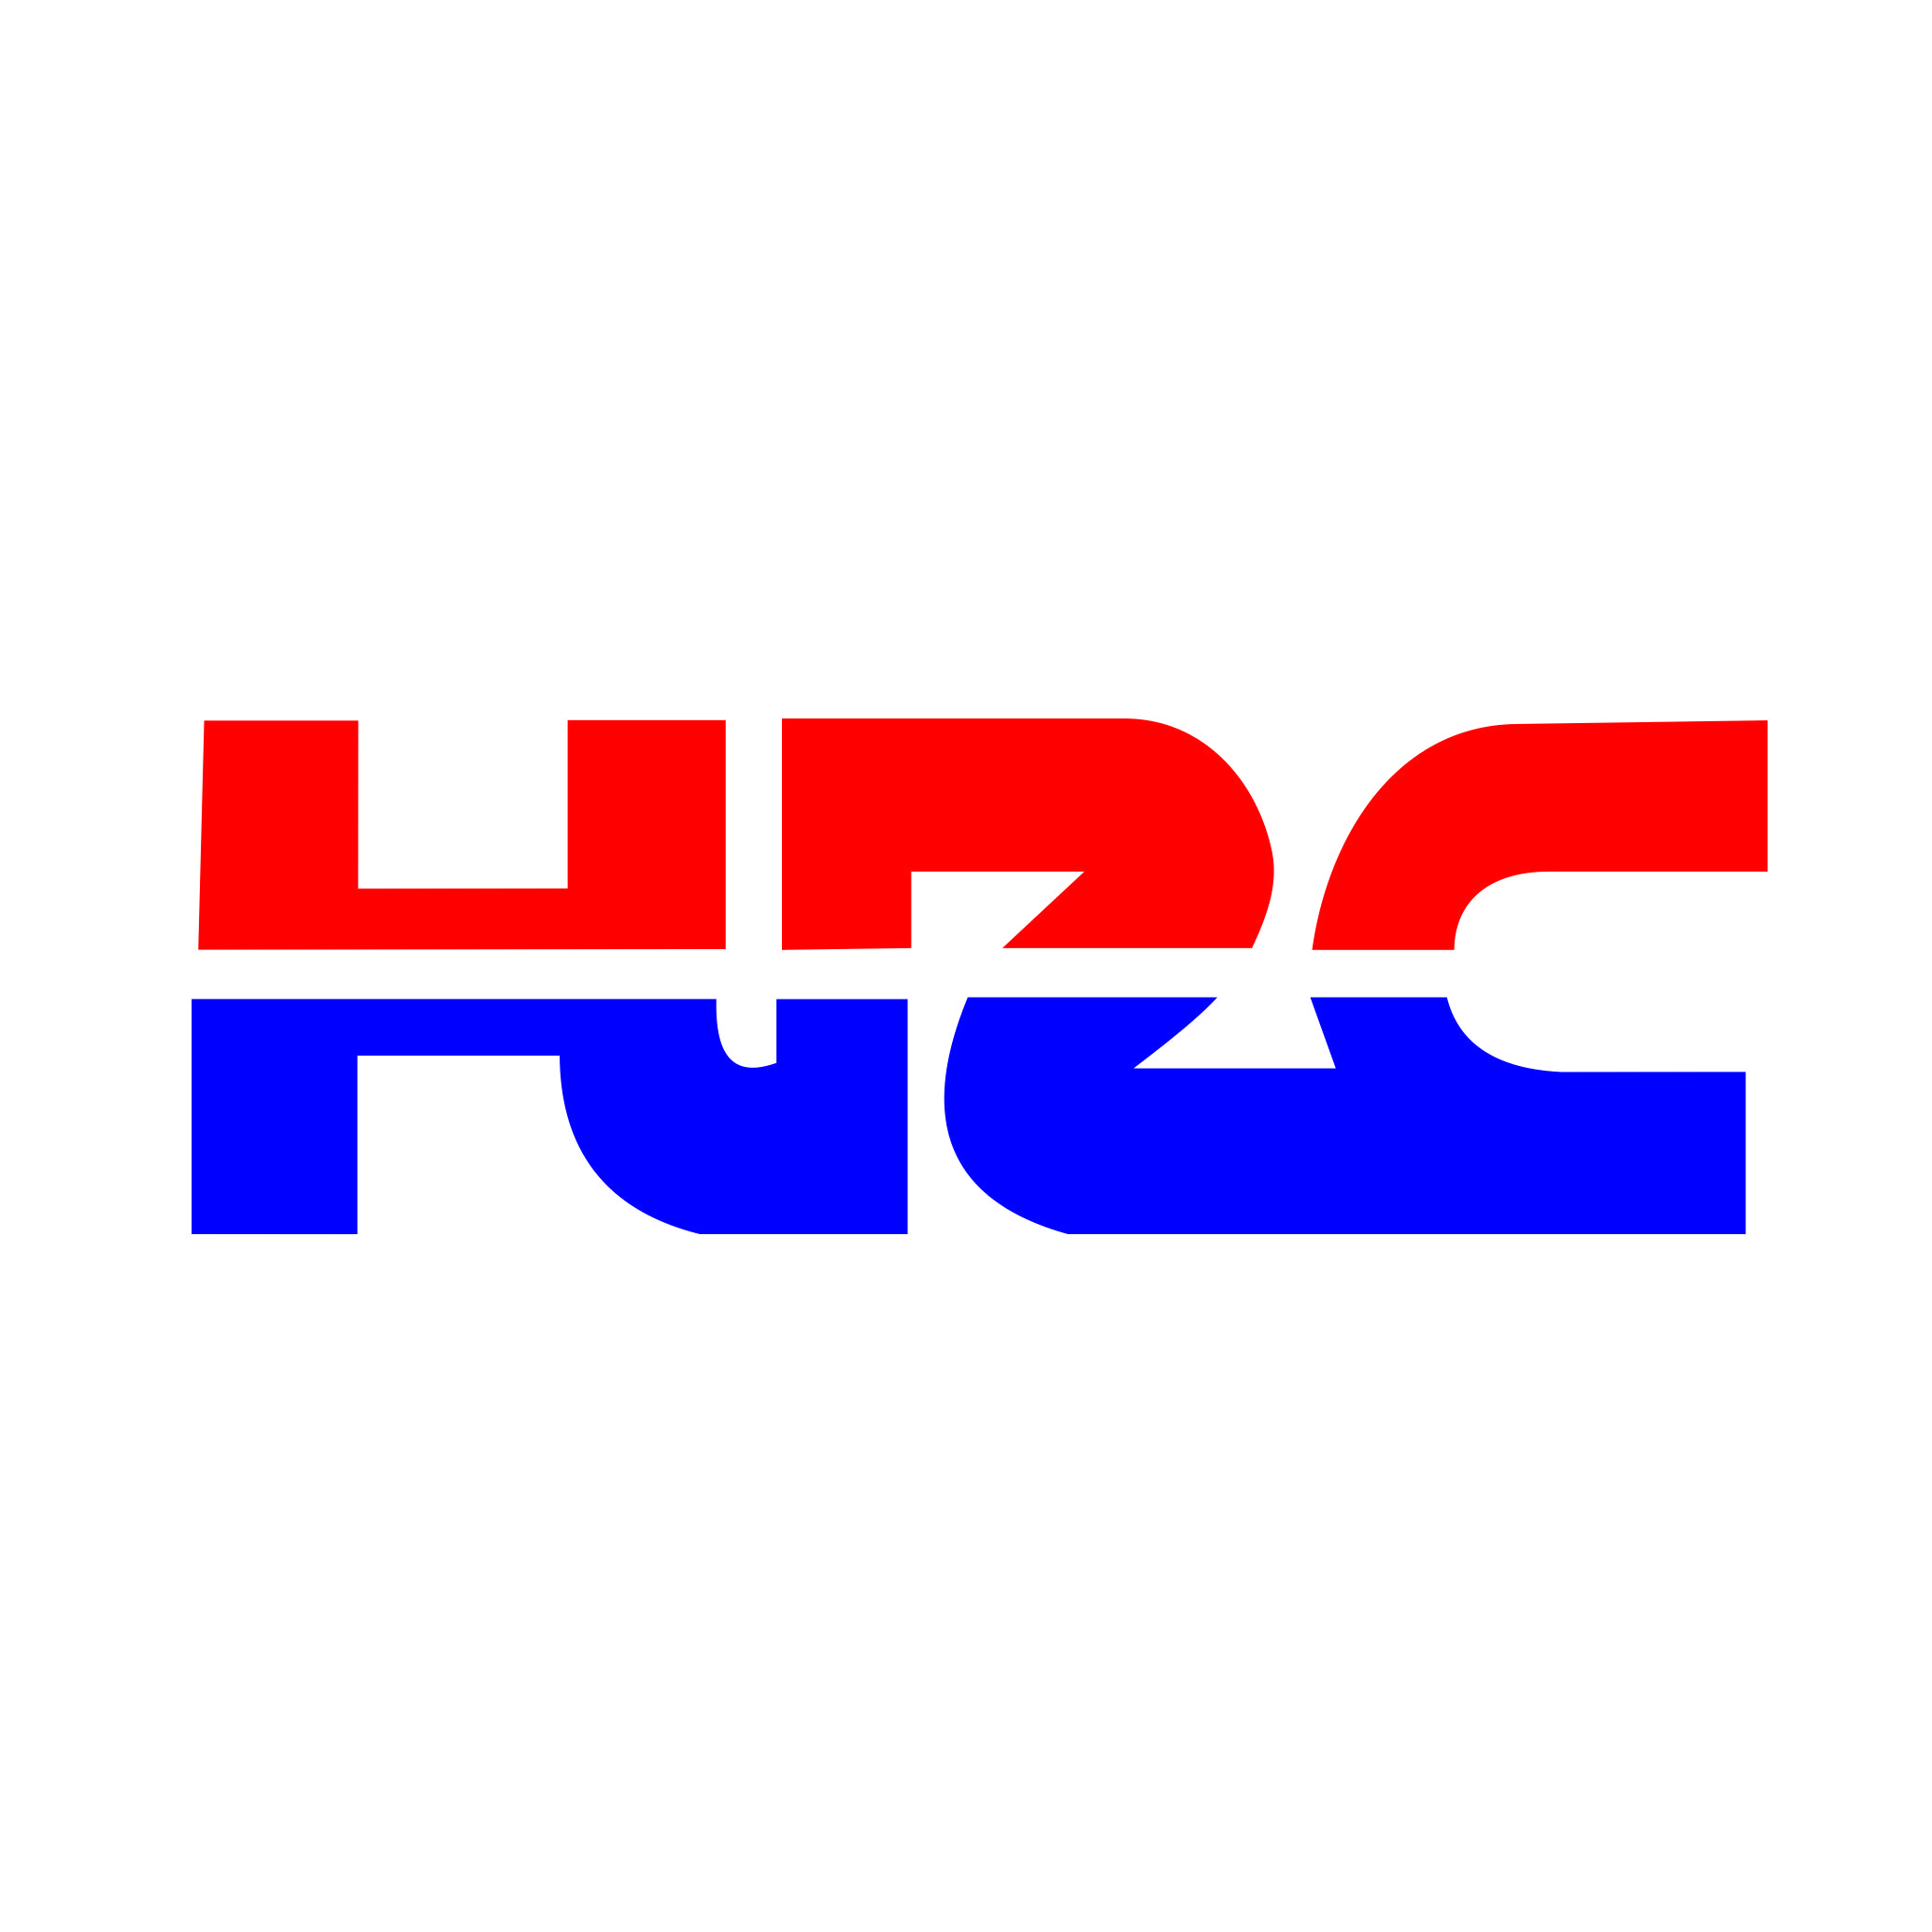 HRC Logo Vinyl Decal, Graphic, Bumper Sticker.